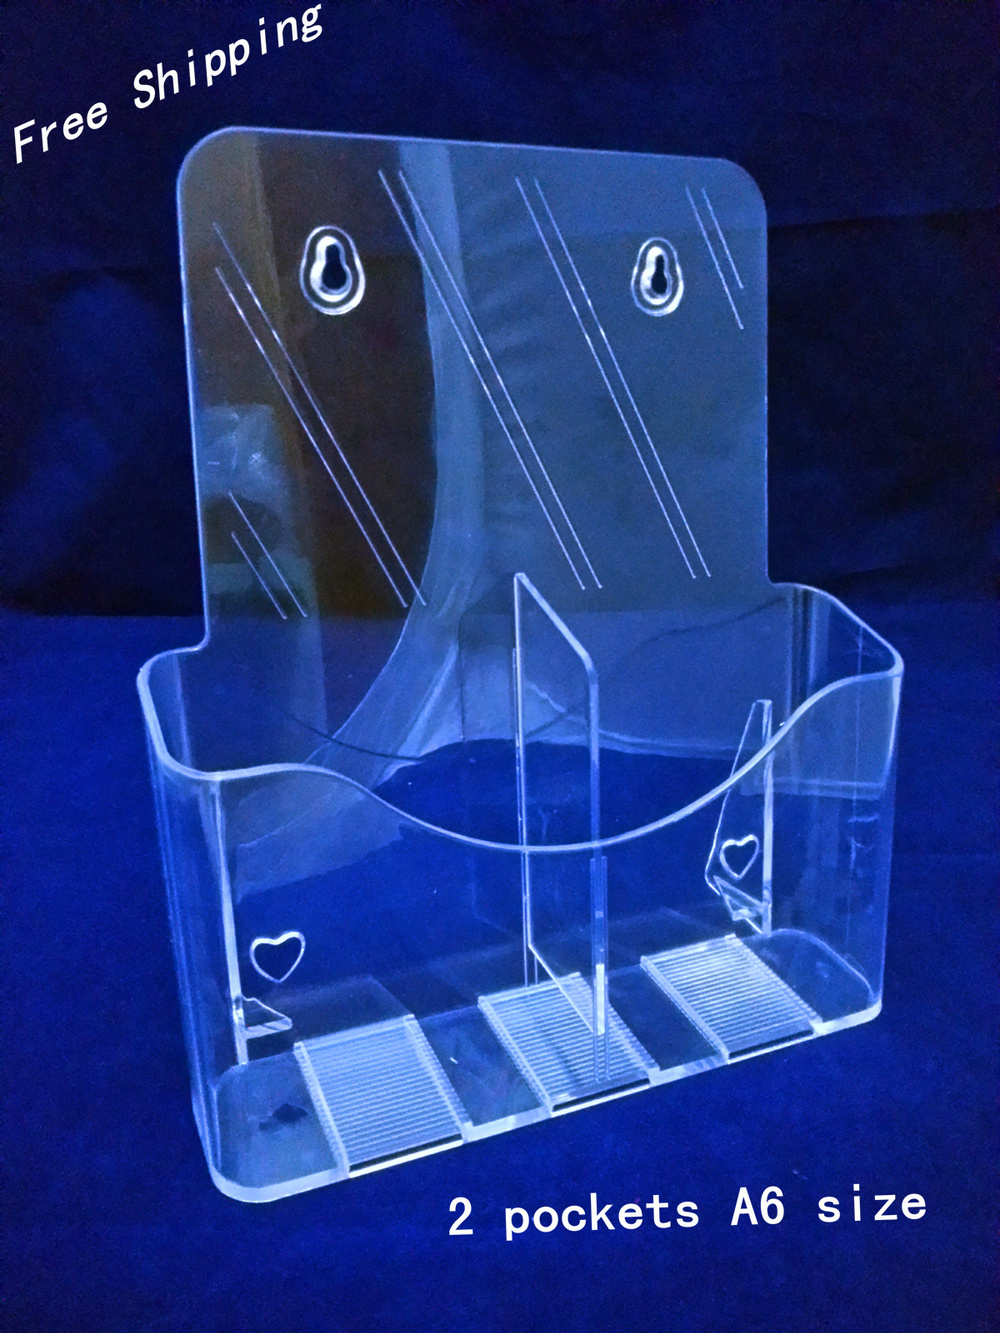 2pcs Clear A6 Two Pockets Plastic Brochure Literature Display Holder Racks Stand To Insert Leaflet On Desktop clear 2pcs a5 3 tiers plastic brochure literature pamphlet display holder racks stand to insert leaflet on desktop